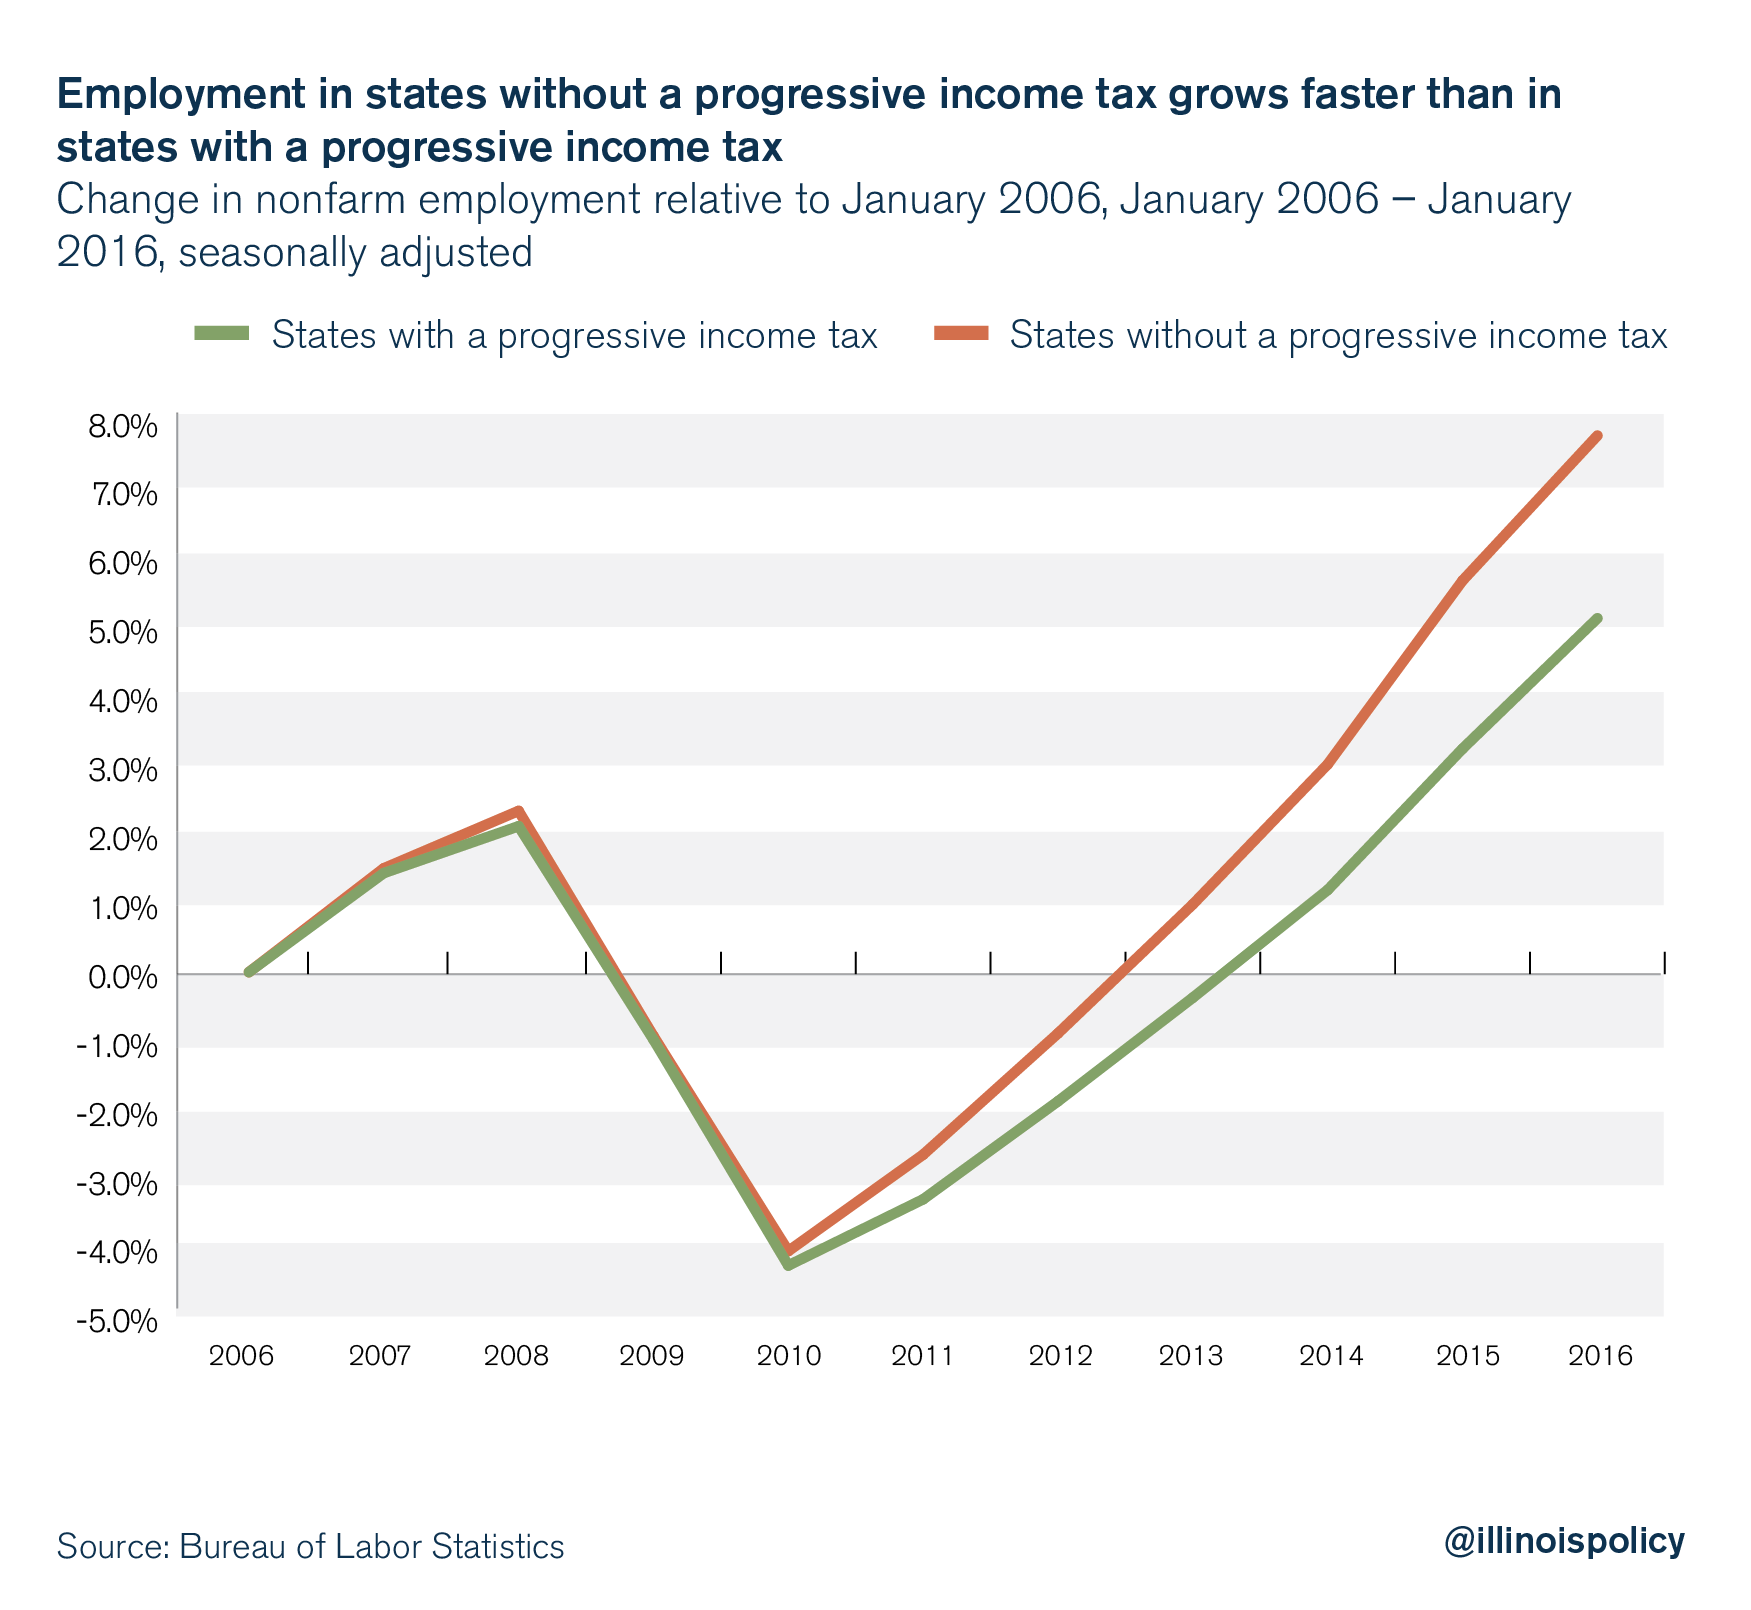 Employment in states without a progressive income tax grows faster than in states with a progressive income tax